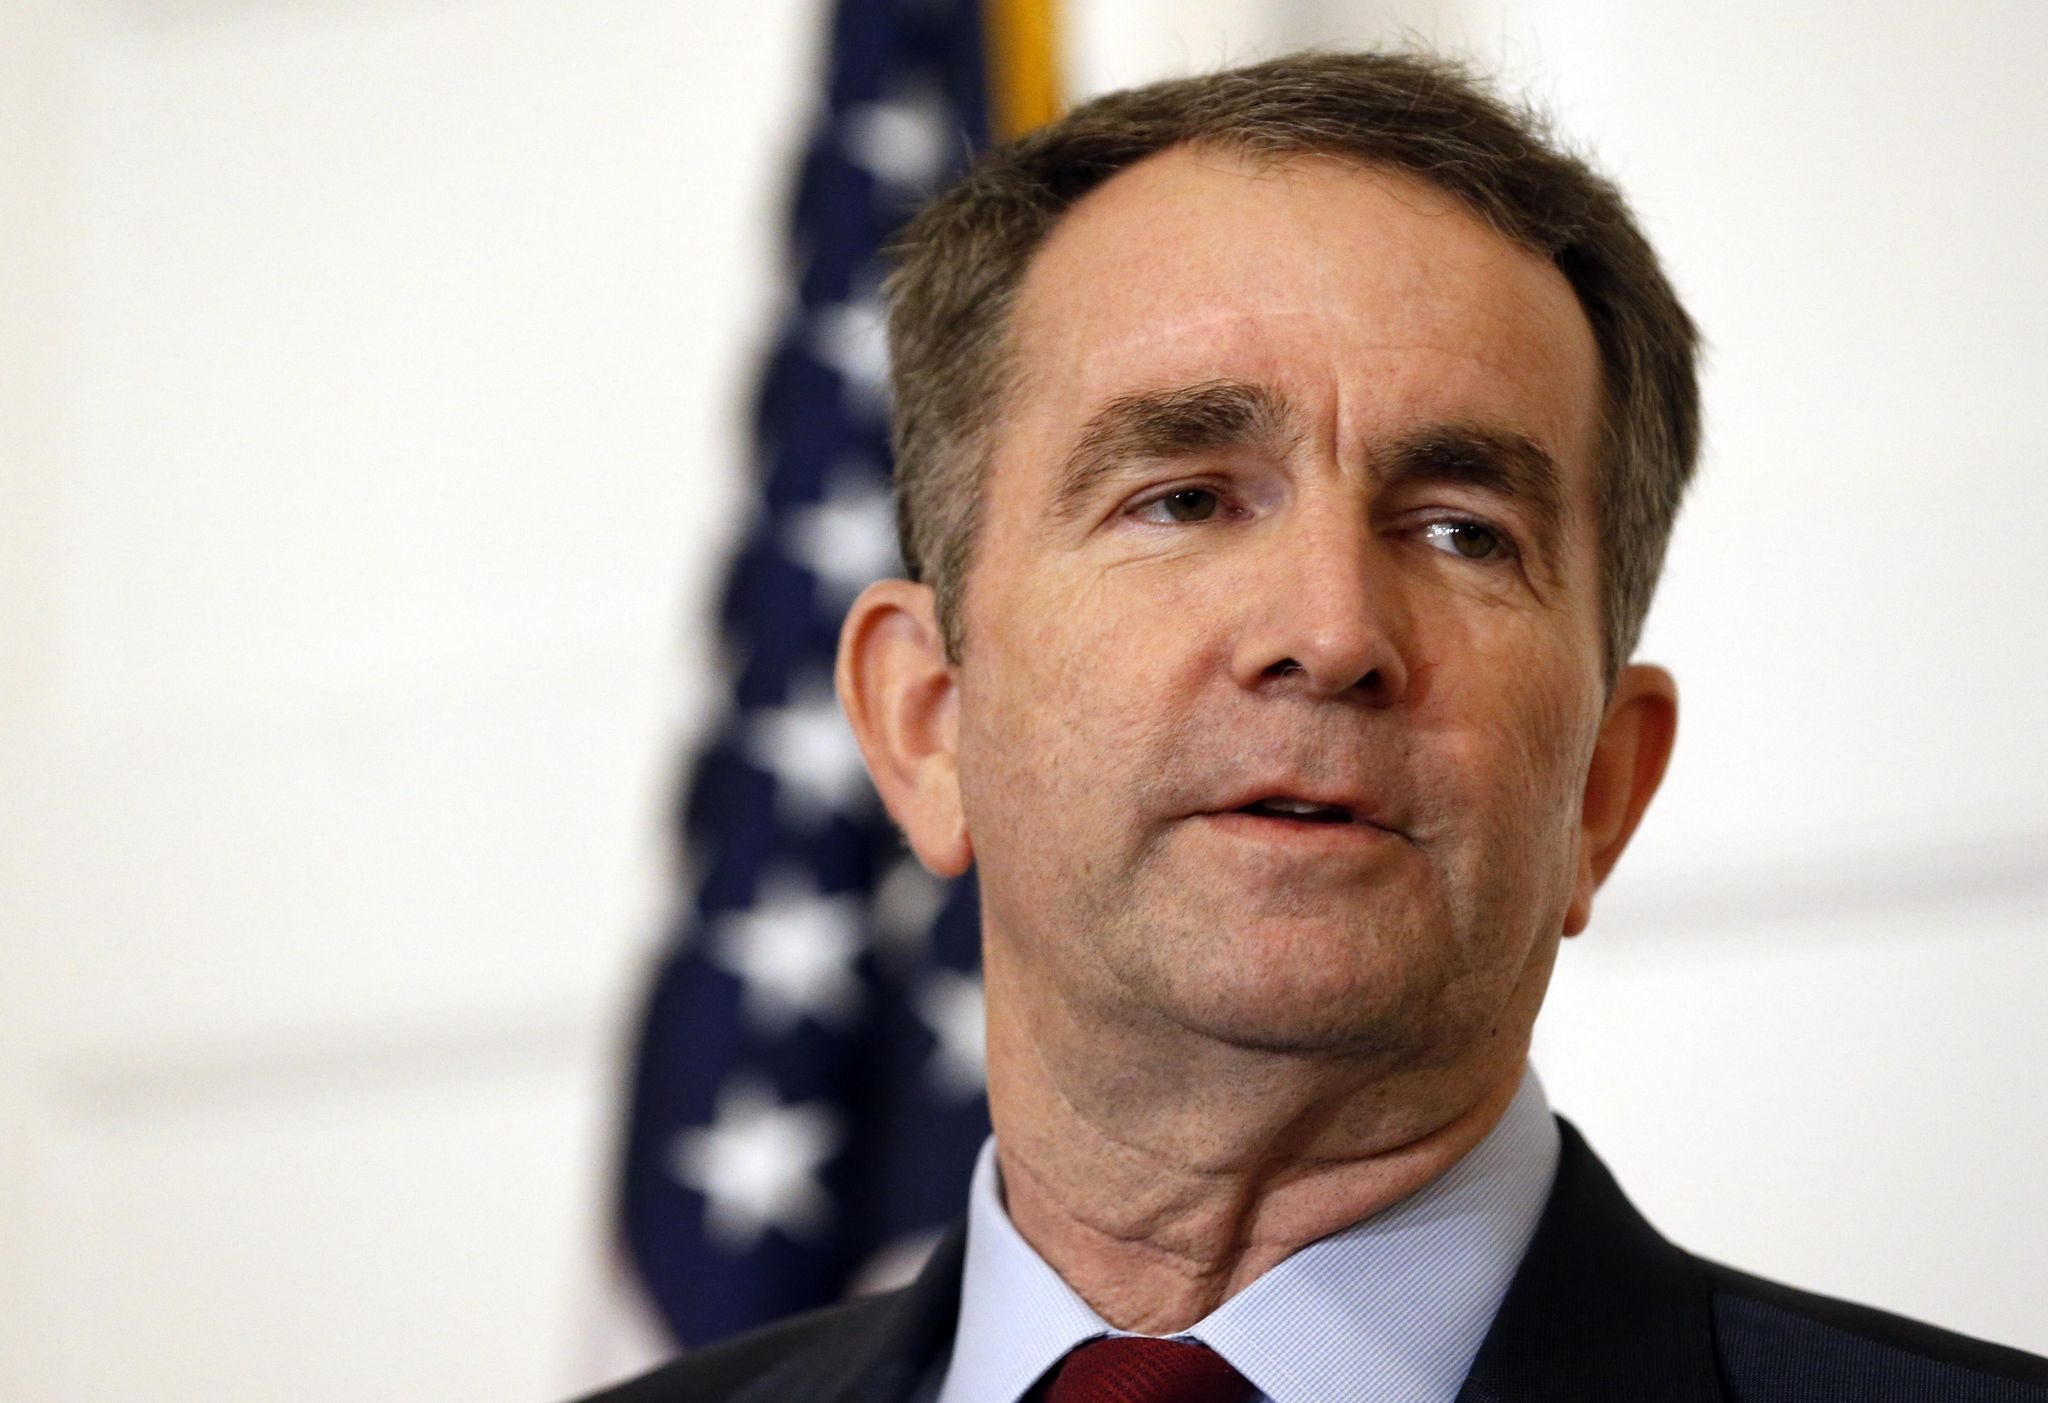 Gov. Ralph Northam: As a doctor, I can help Virginia heal